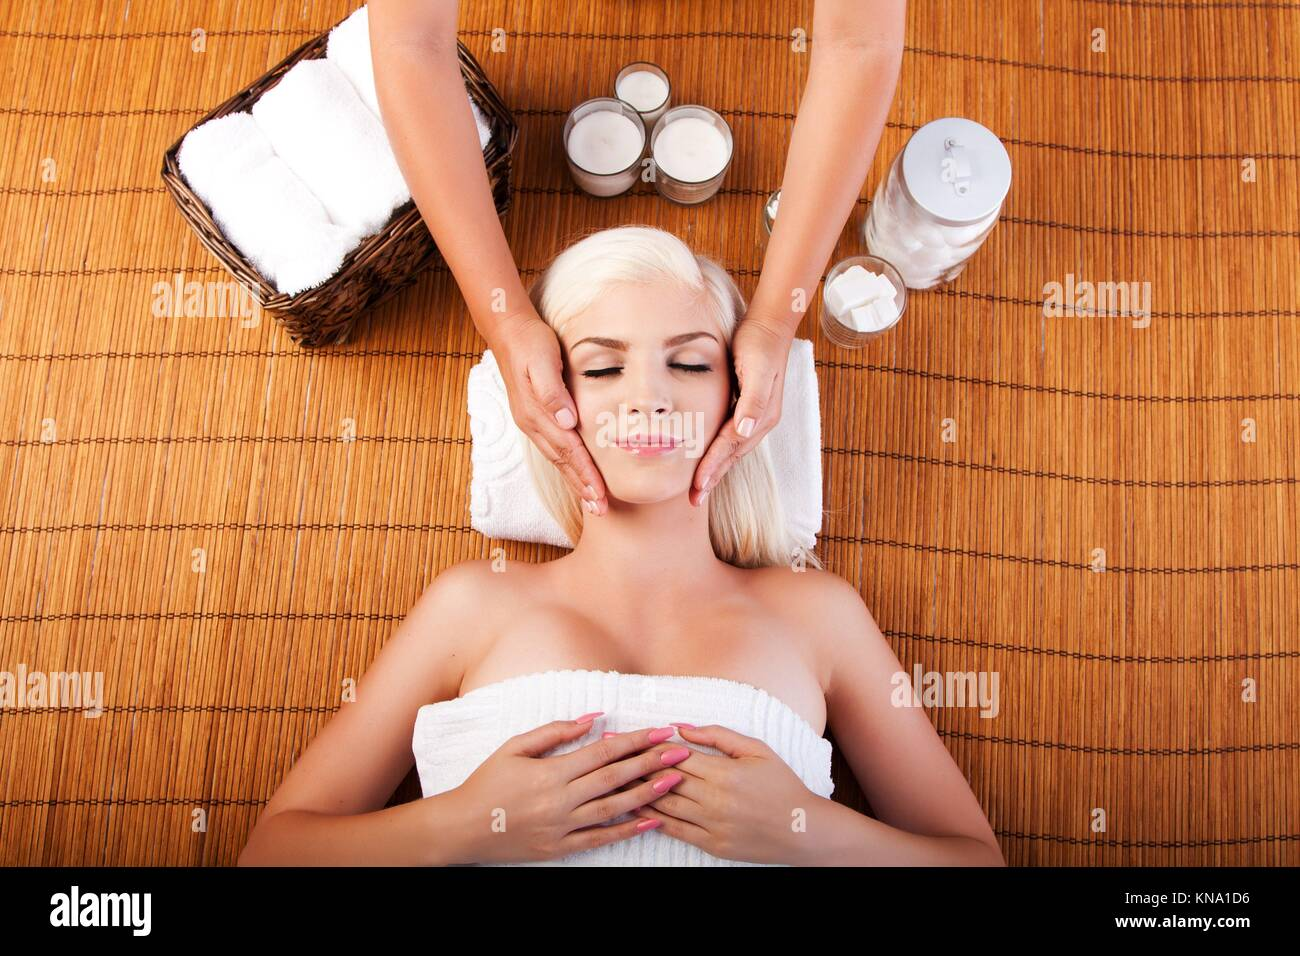 Beautiful young woman relaxing at spa getting therapeutic pampering facial massage, laying on bamboo. - Stock Image